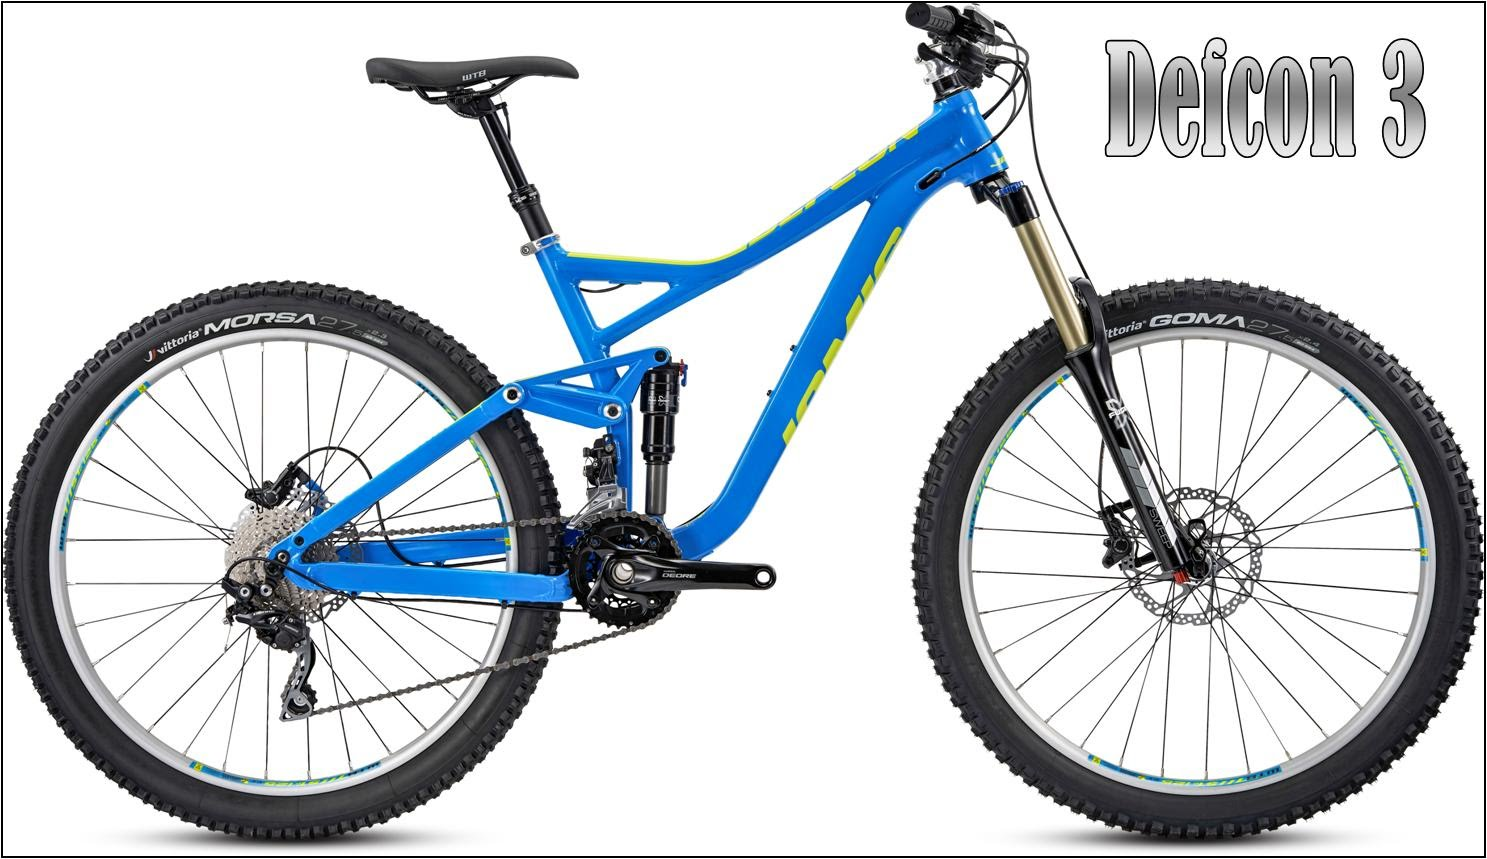 defcon 3 enduro mountain bike 650B 27.5